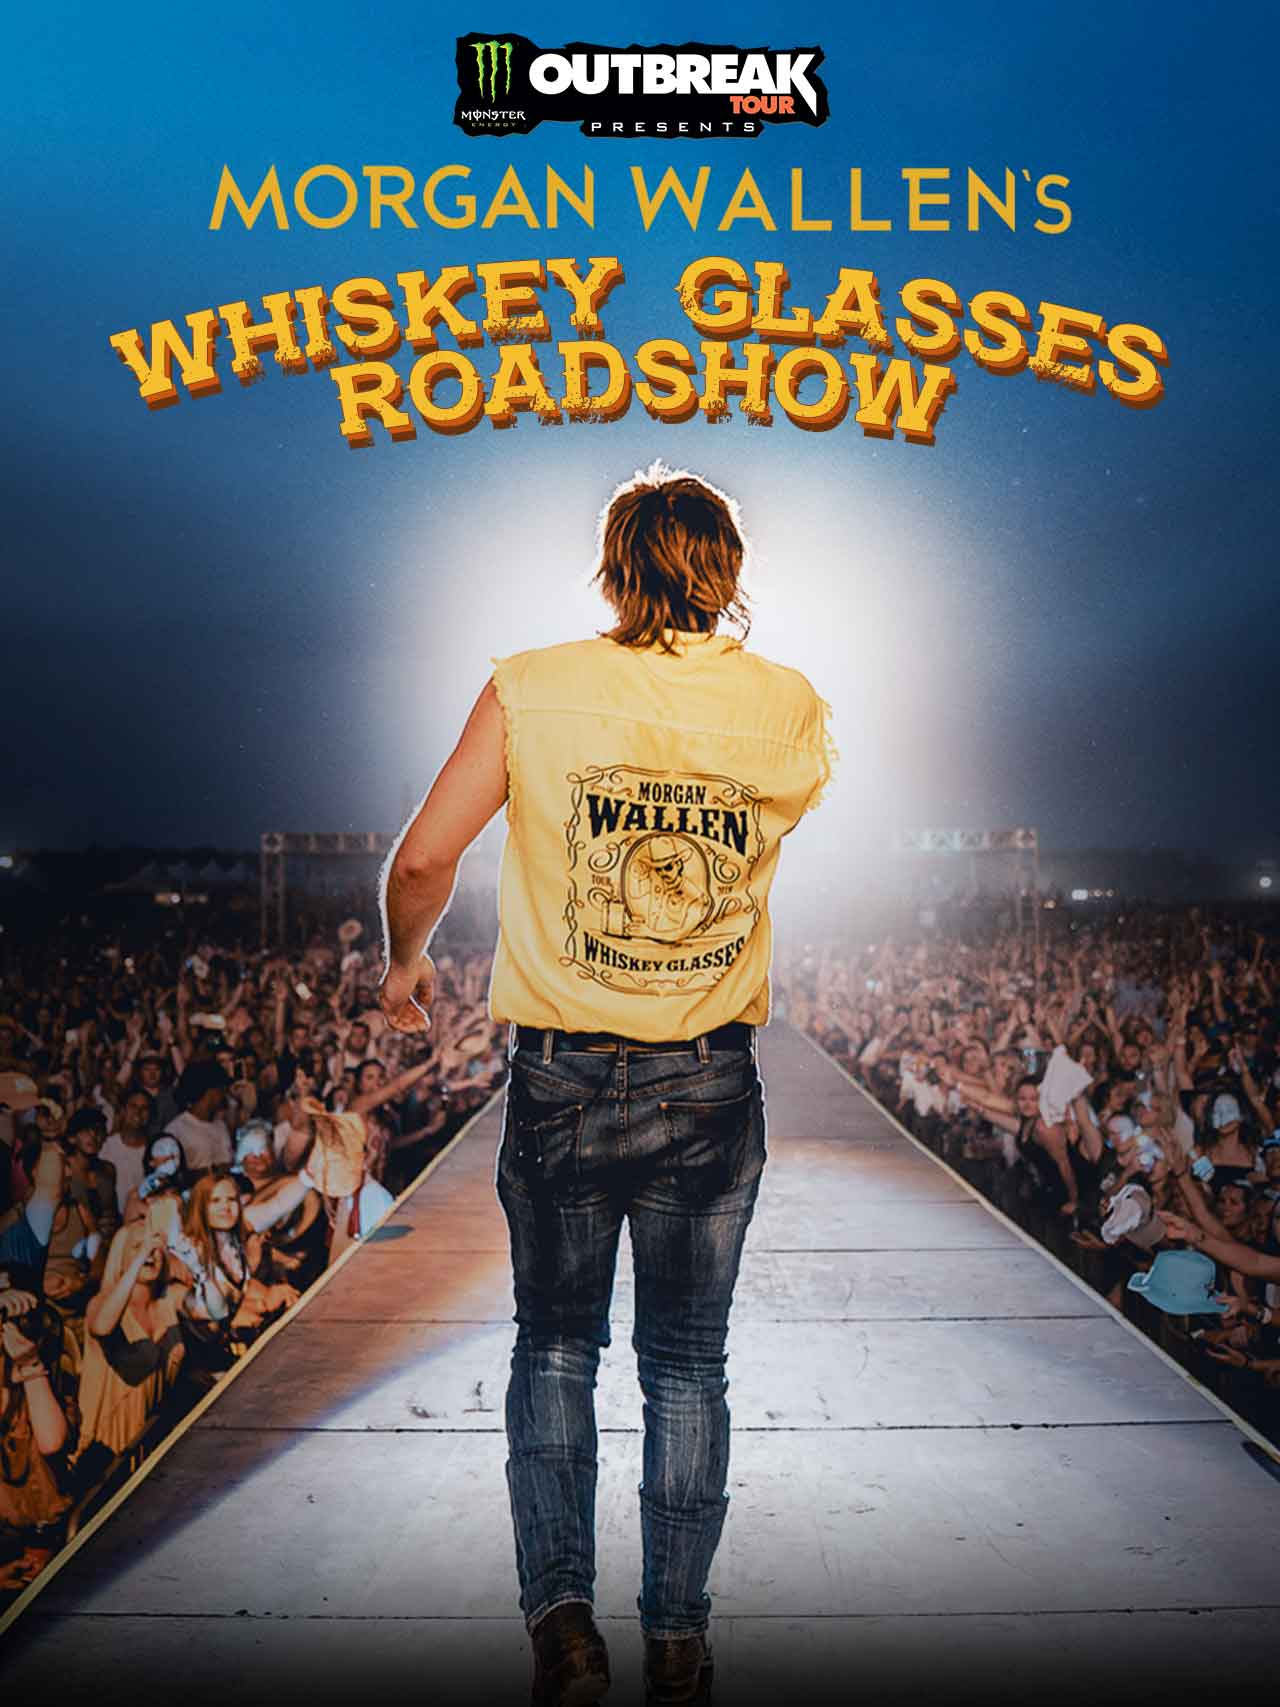 The Whiskey Glasses Road Show